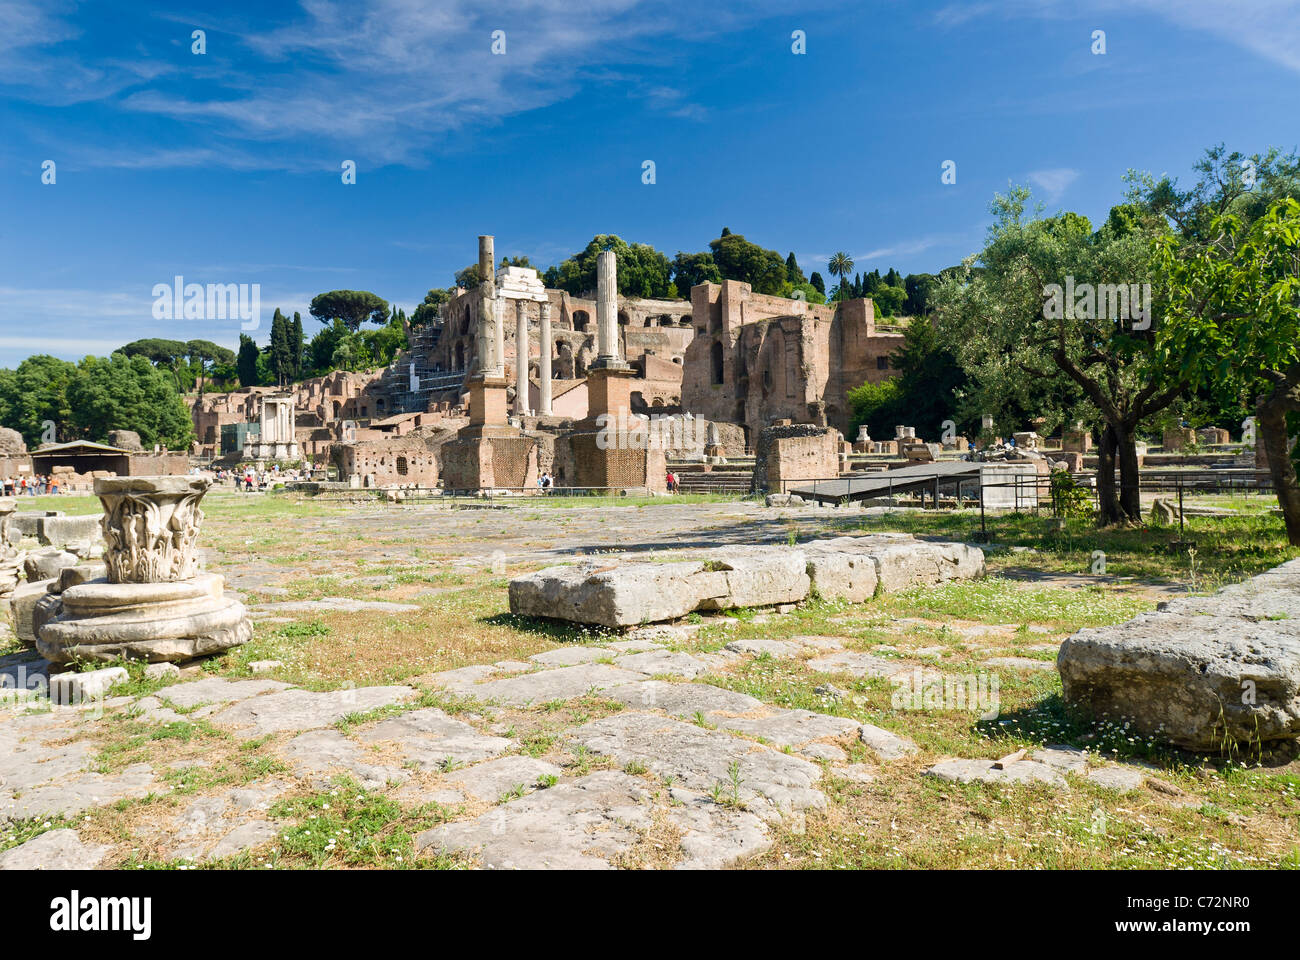 Rome, Italy. The Main Square in the Roman Forum. - Stock Image